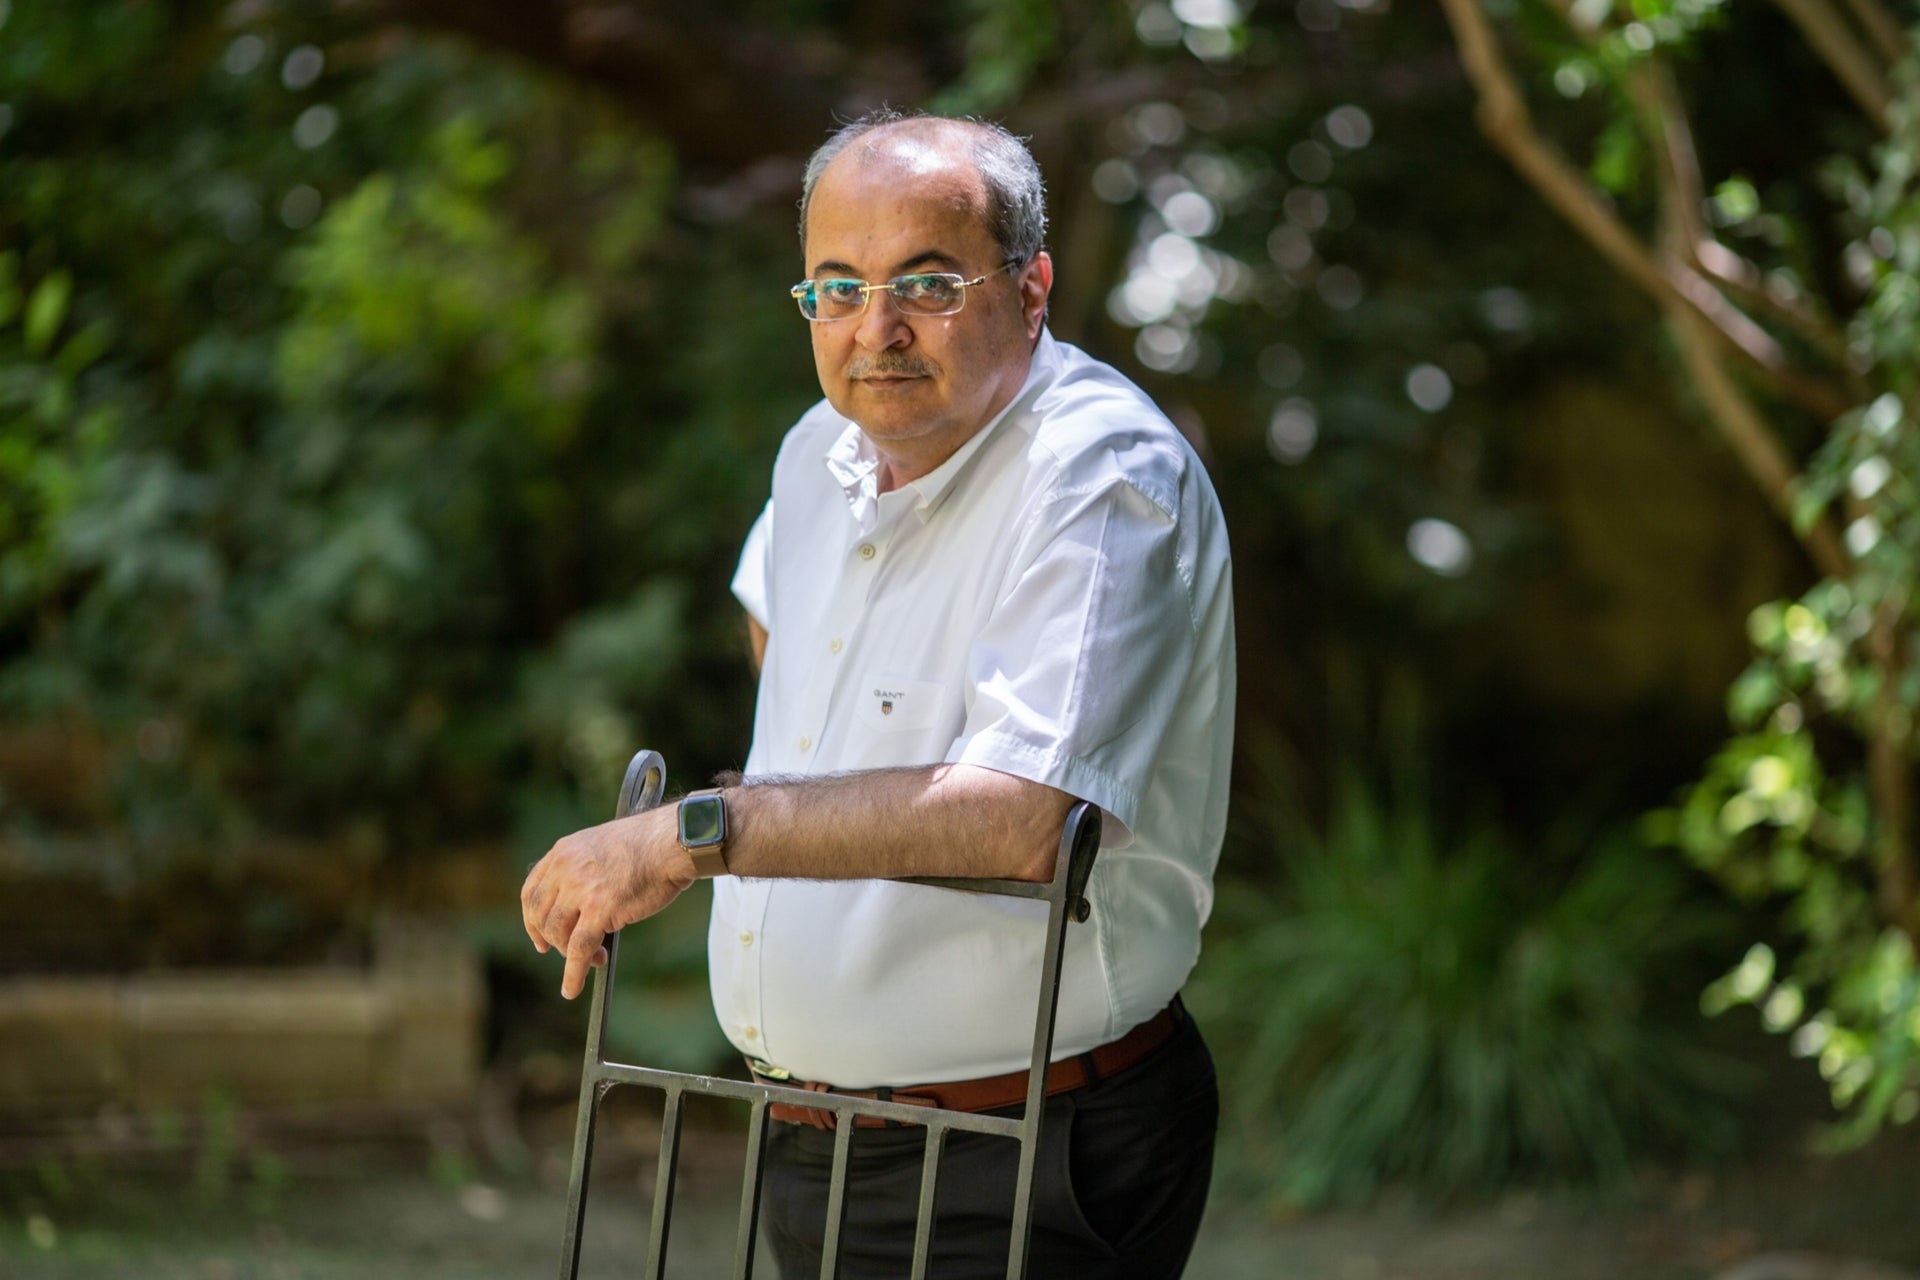 Joint List faction head and MK Ahmad Tibi, at the Israel Democracy Institute in Jerusalem, July 2020